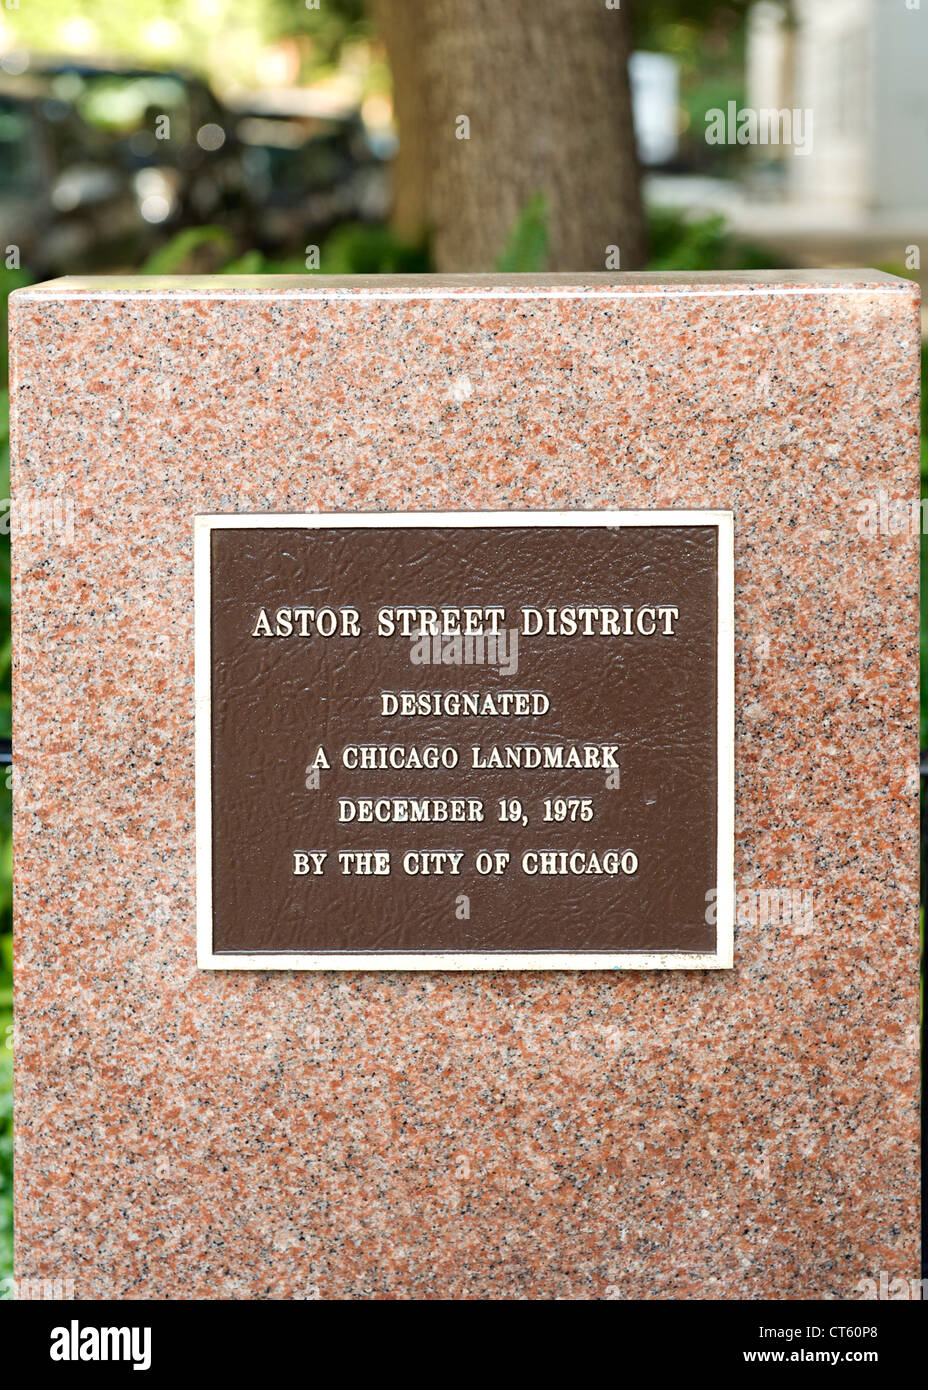 Astor Street district plaque in Chicago, Illinois, USA. - Stock Image